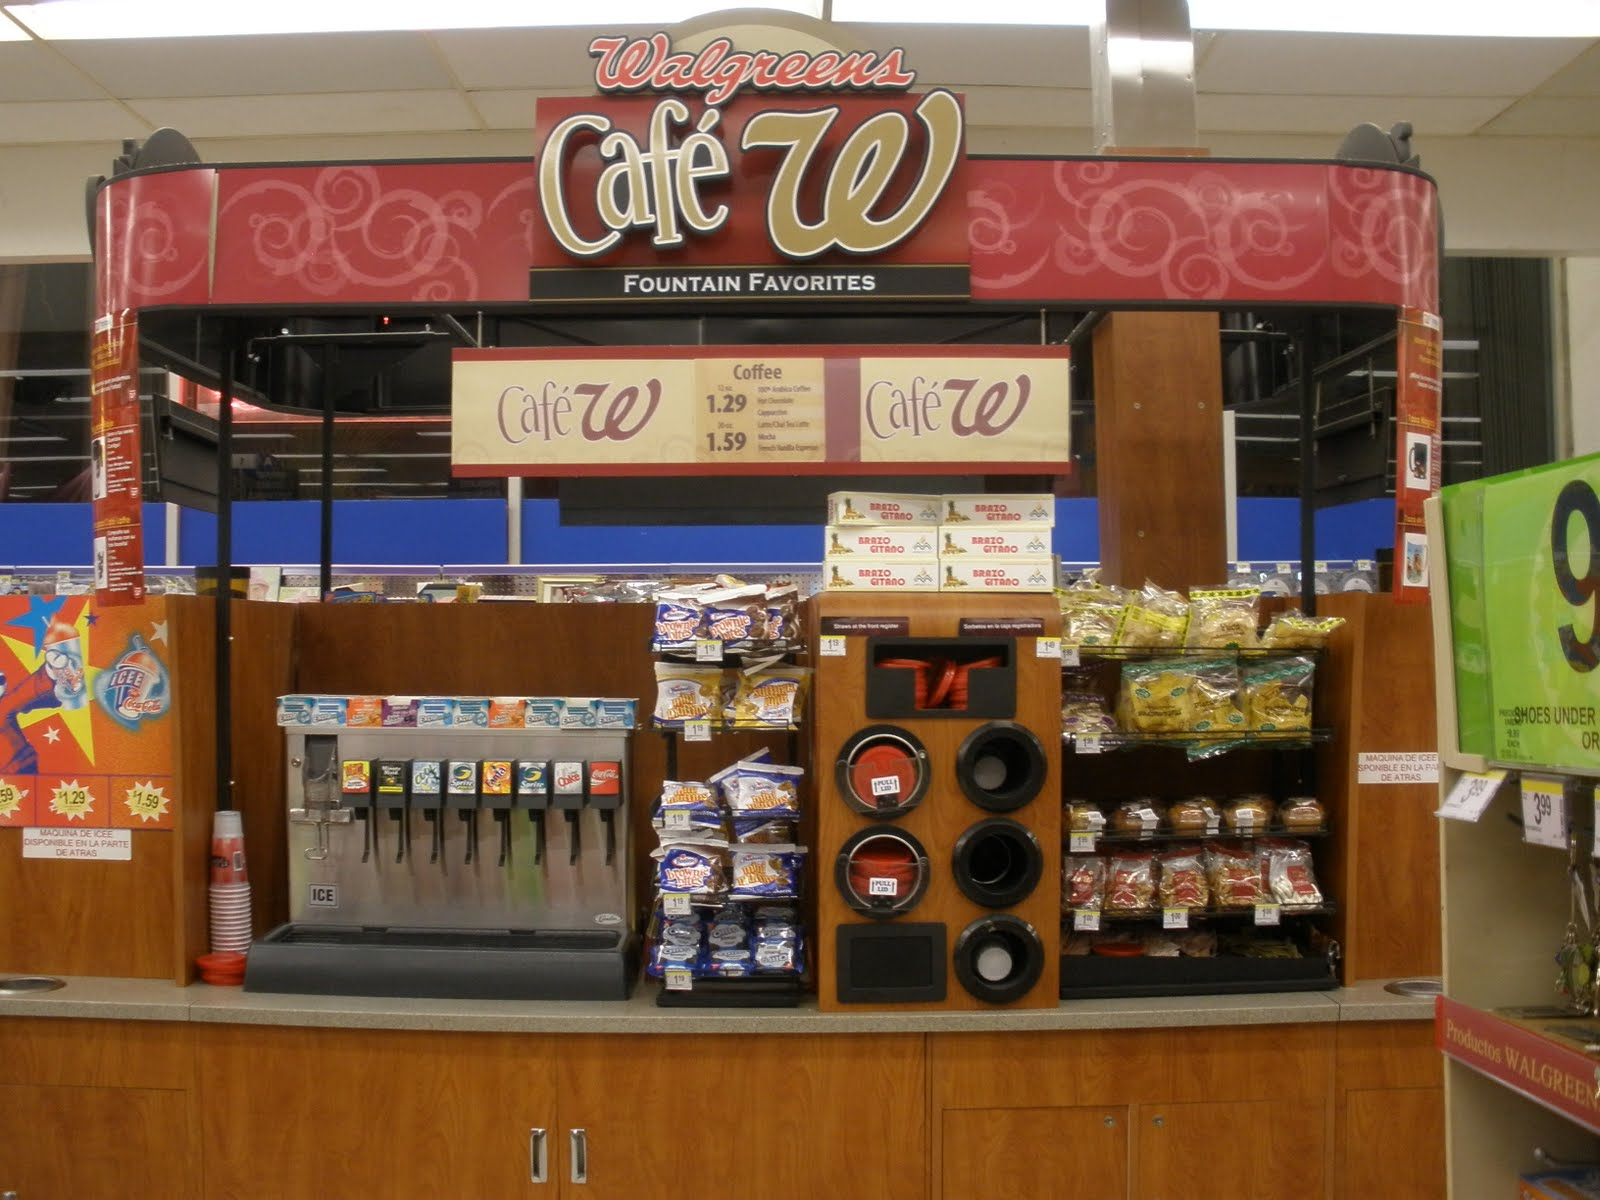 foodservice solutions 2010 walgreen cafe w to test chilled food this fall